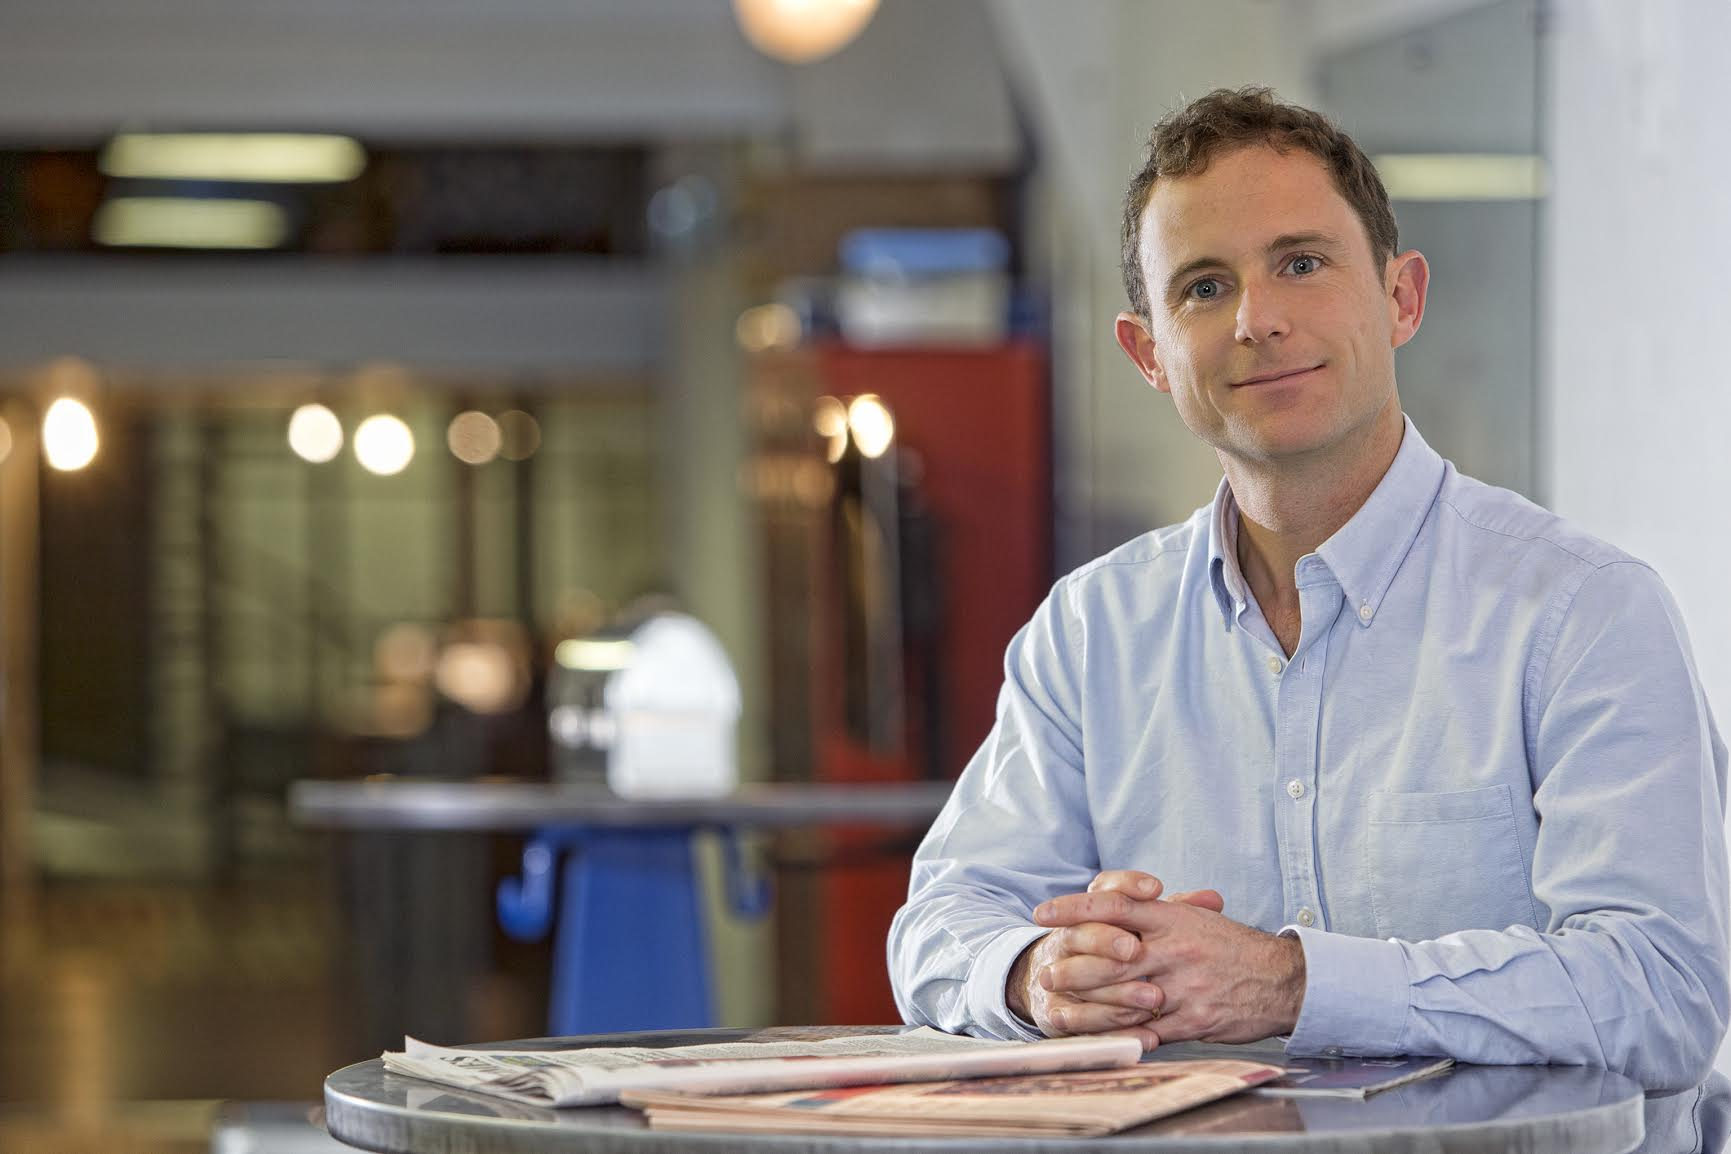 Rob Moffat, Balderton Capital Partner